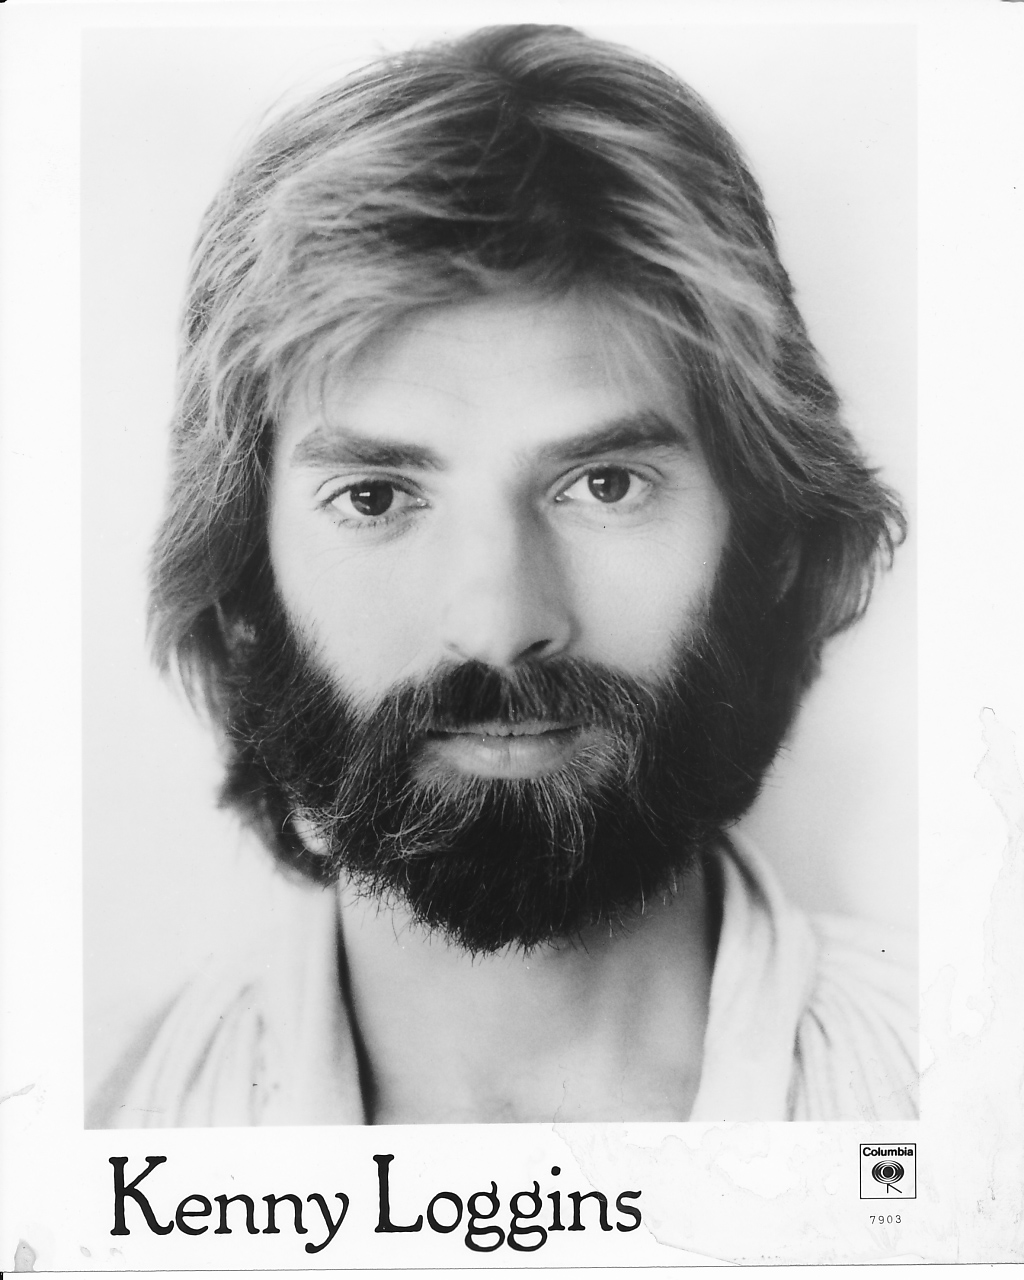 Kenny Loggins - Wikipedia